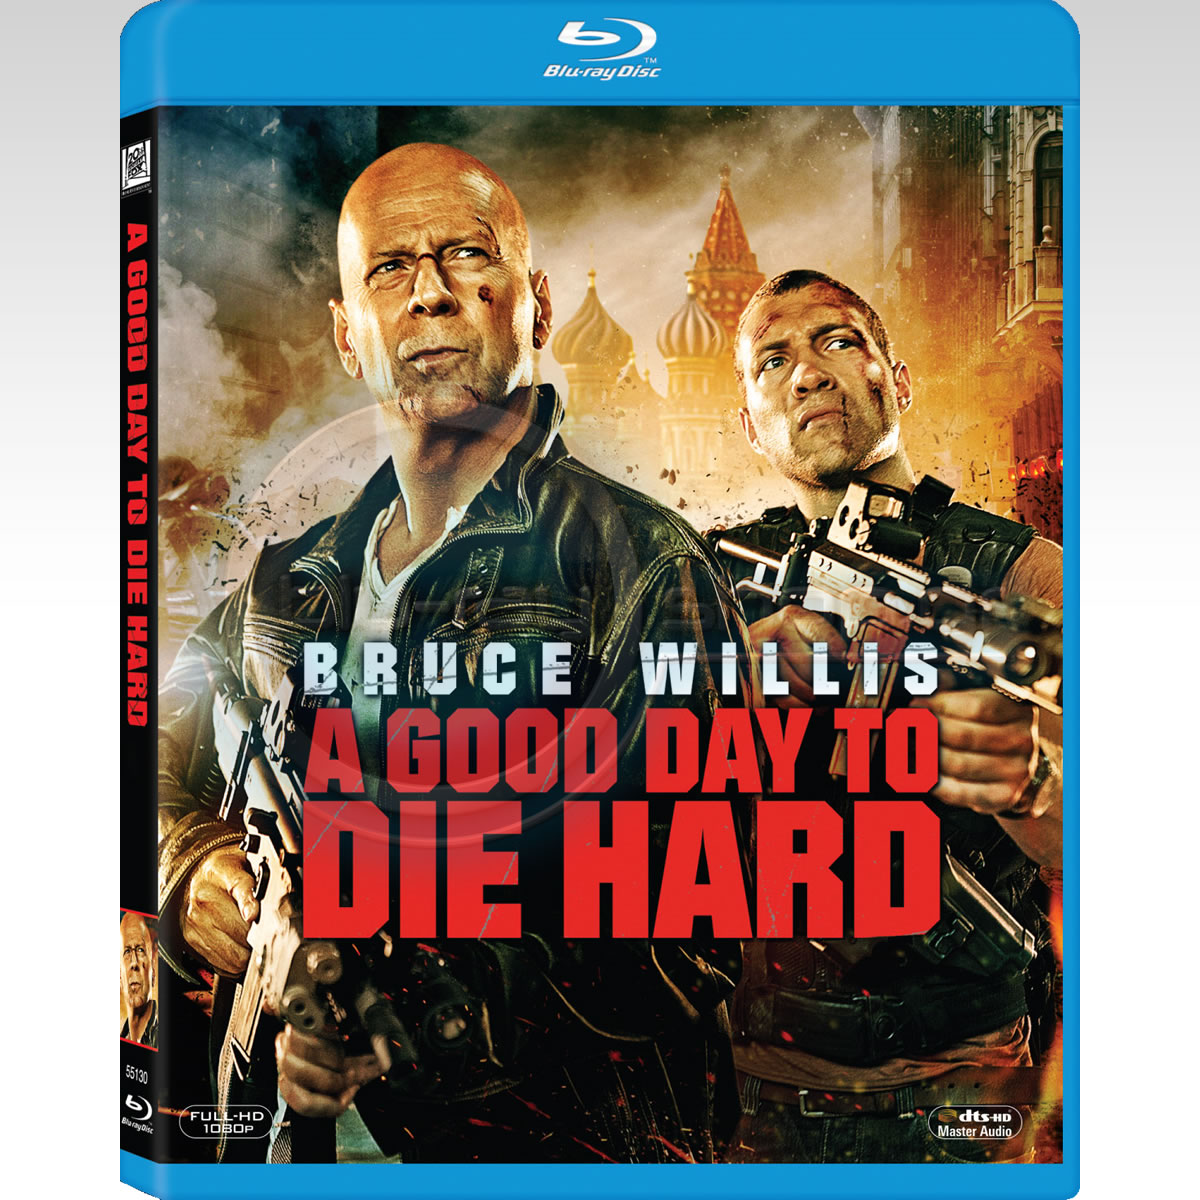 A GOOD DAY TO DIE HARD Extended Cut - ���� ������� ��� �� ������� ������ Extended Cut (BLU-RAY)